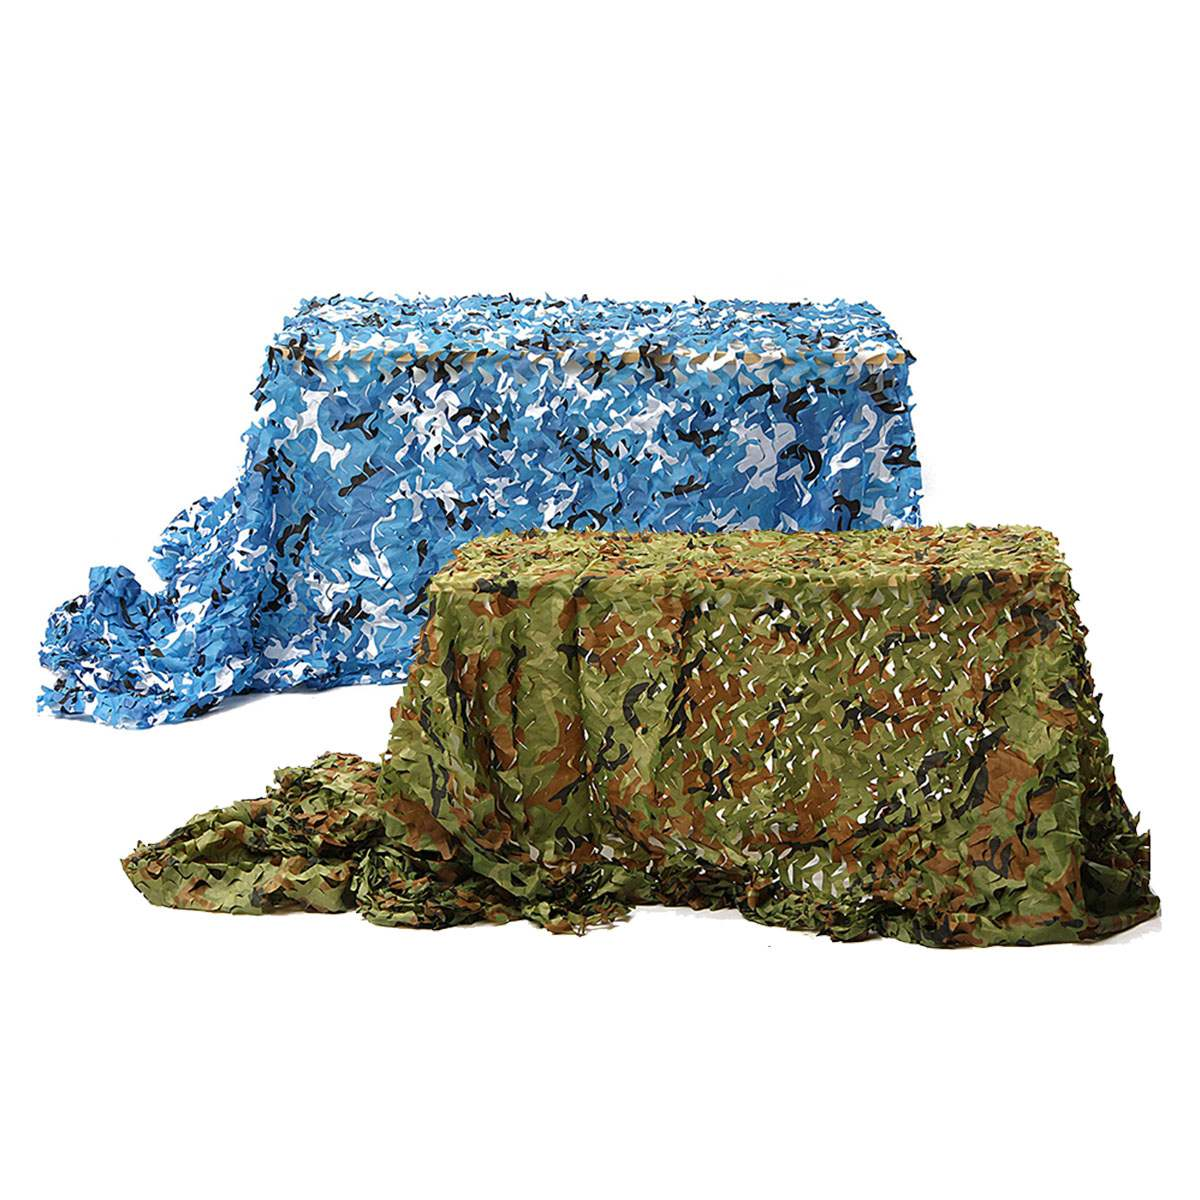 Outdoor Camouflage Blinds Ghillie-Suits Hunting Tents Net Awning Mesh-Screen 150D Polyester